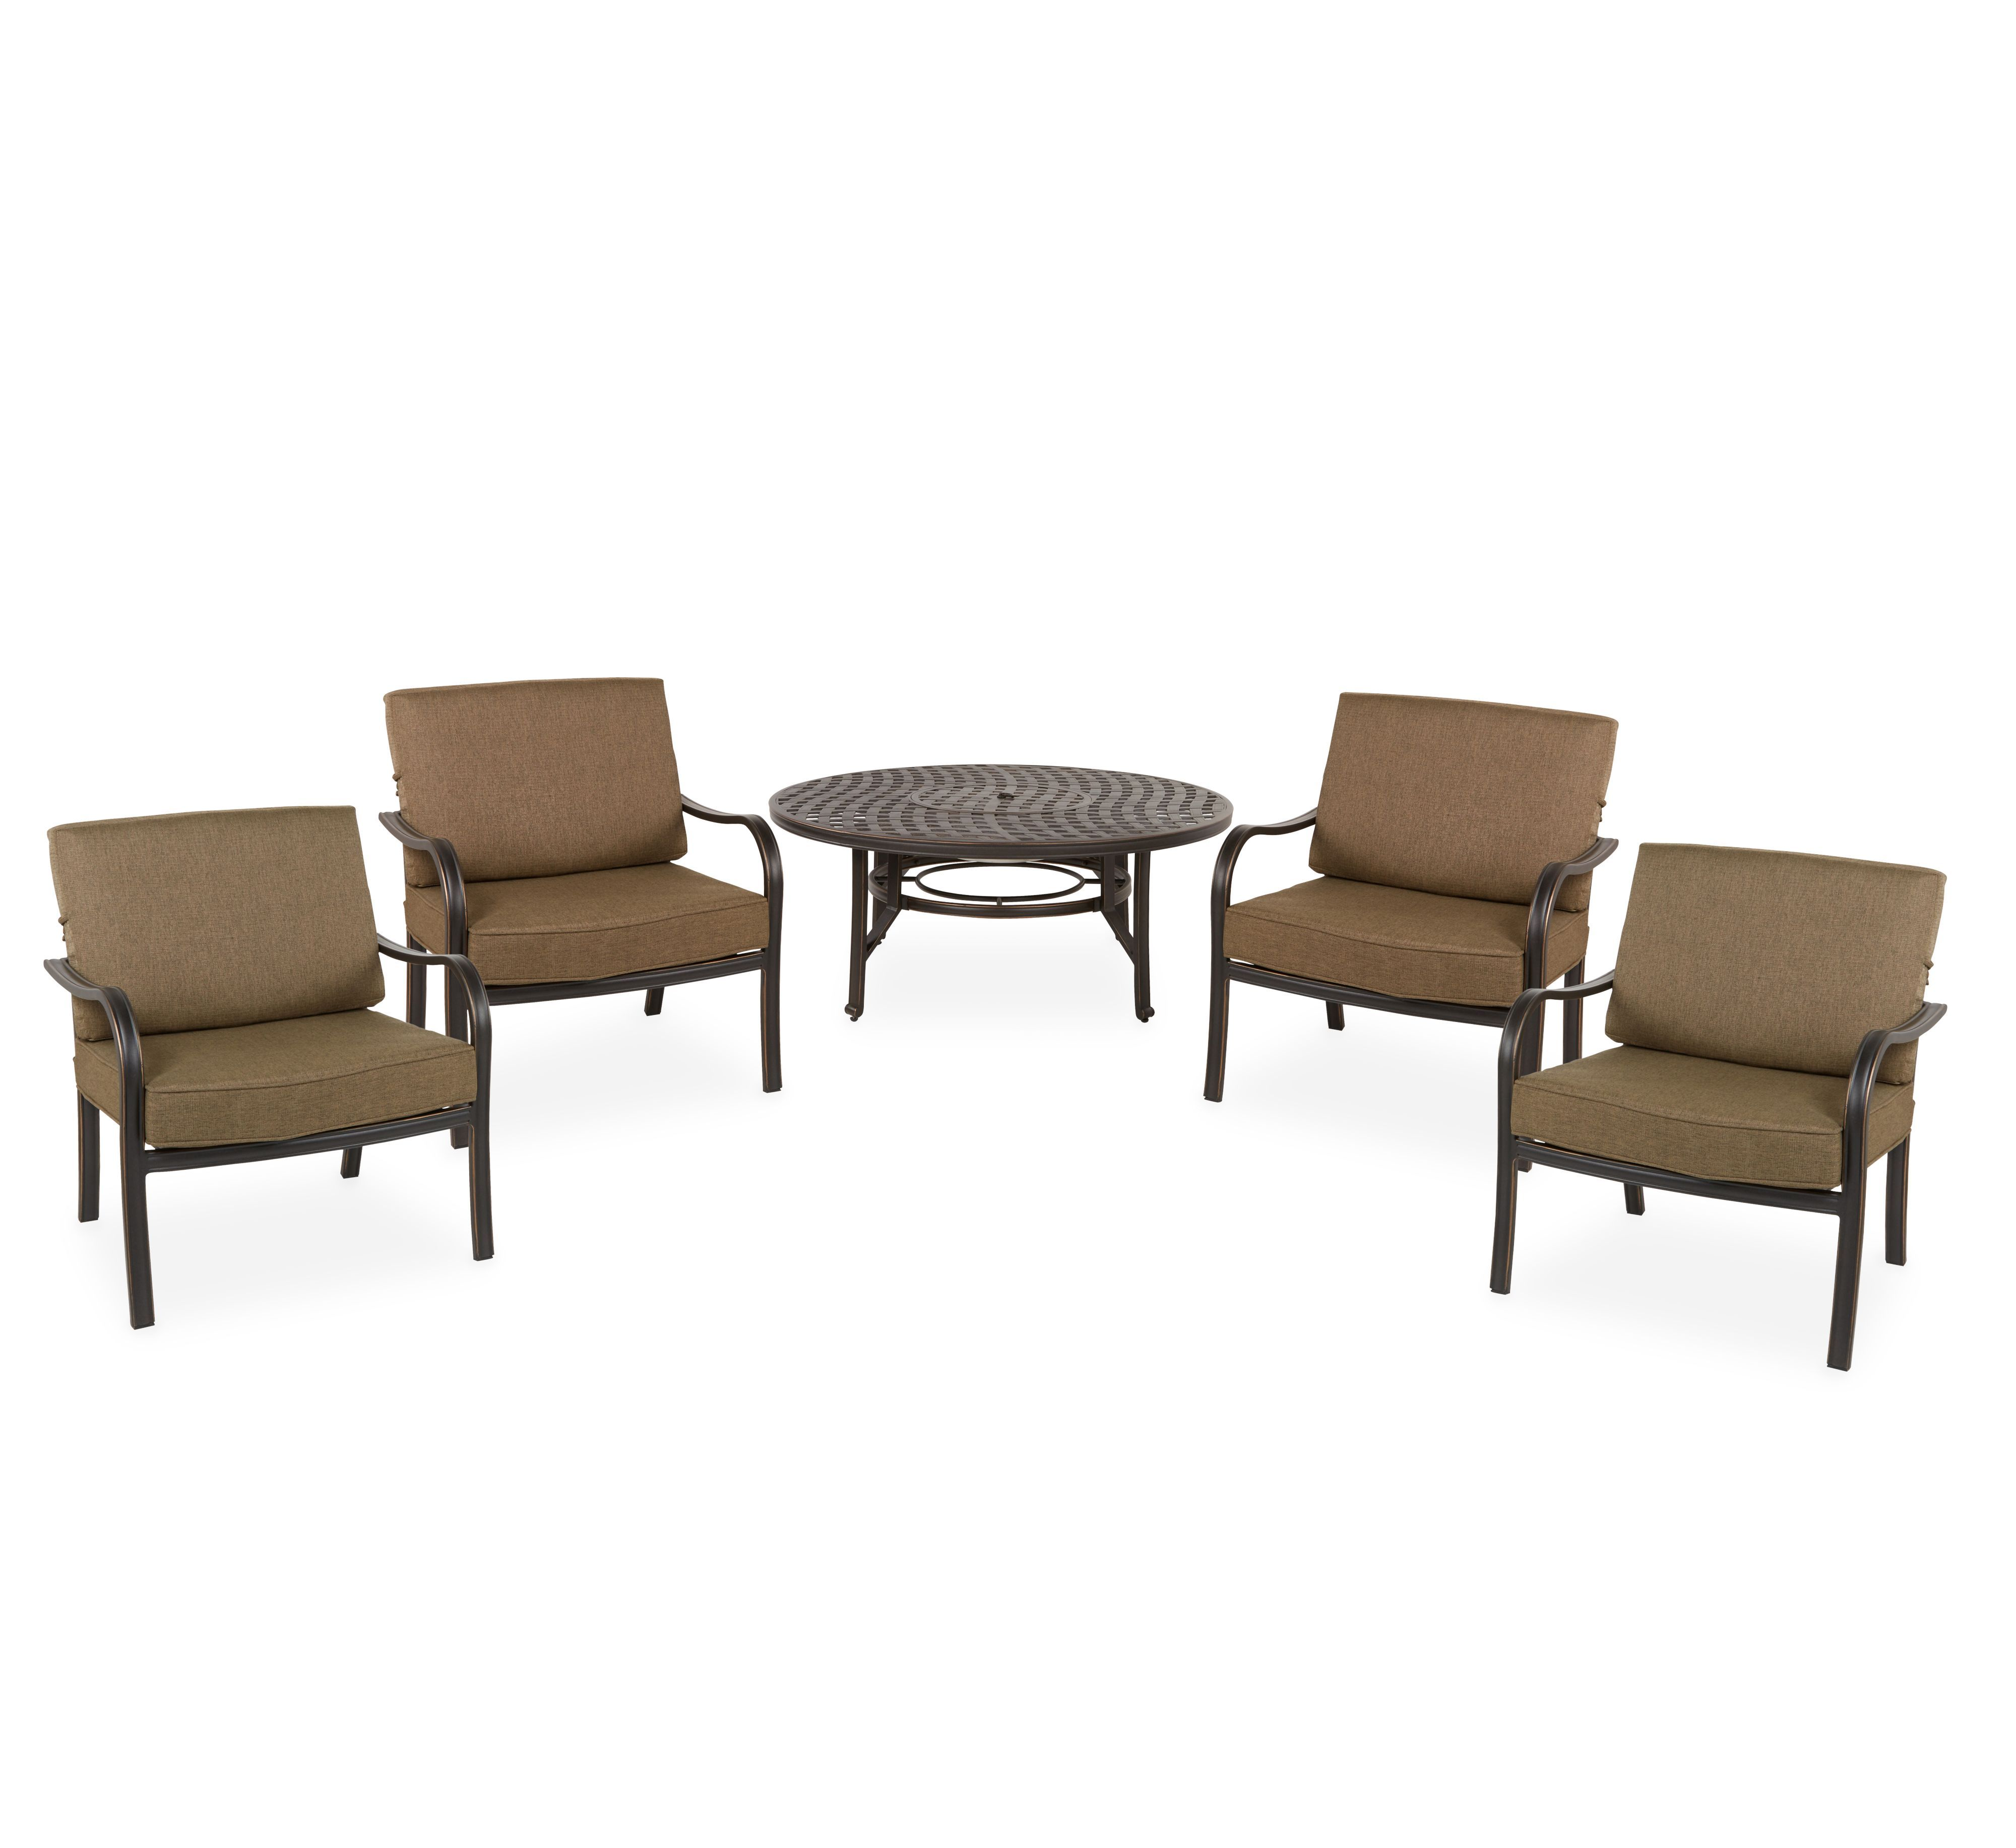 Ripley Metal 4 Seater Fire Pit Dining Set